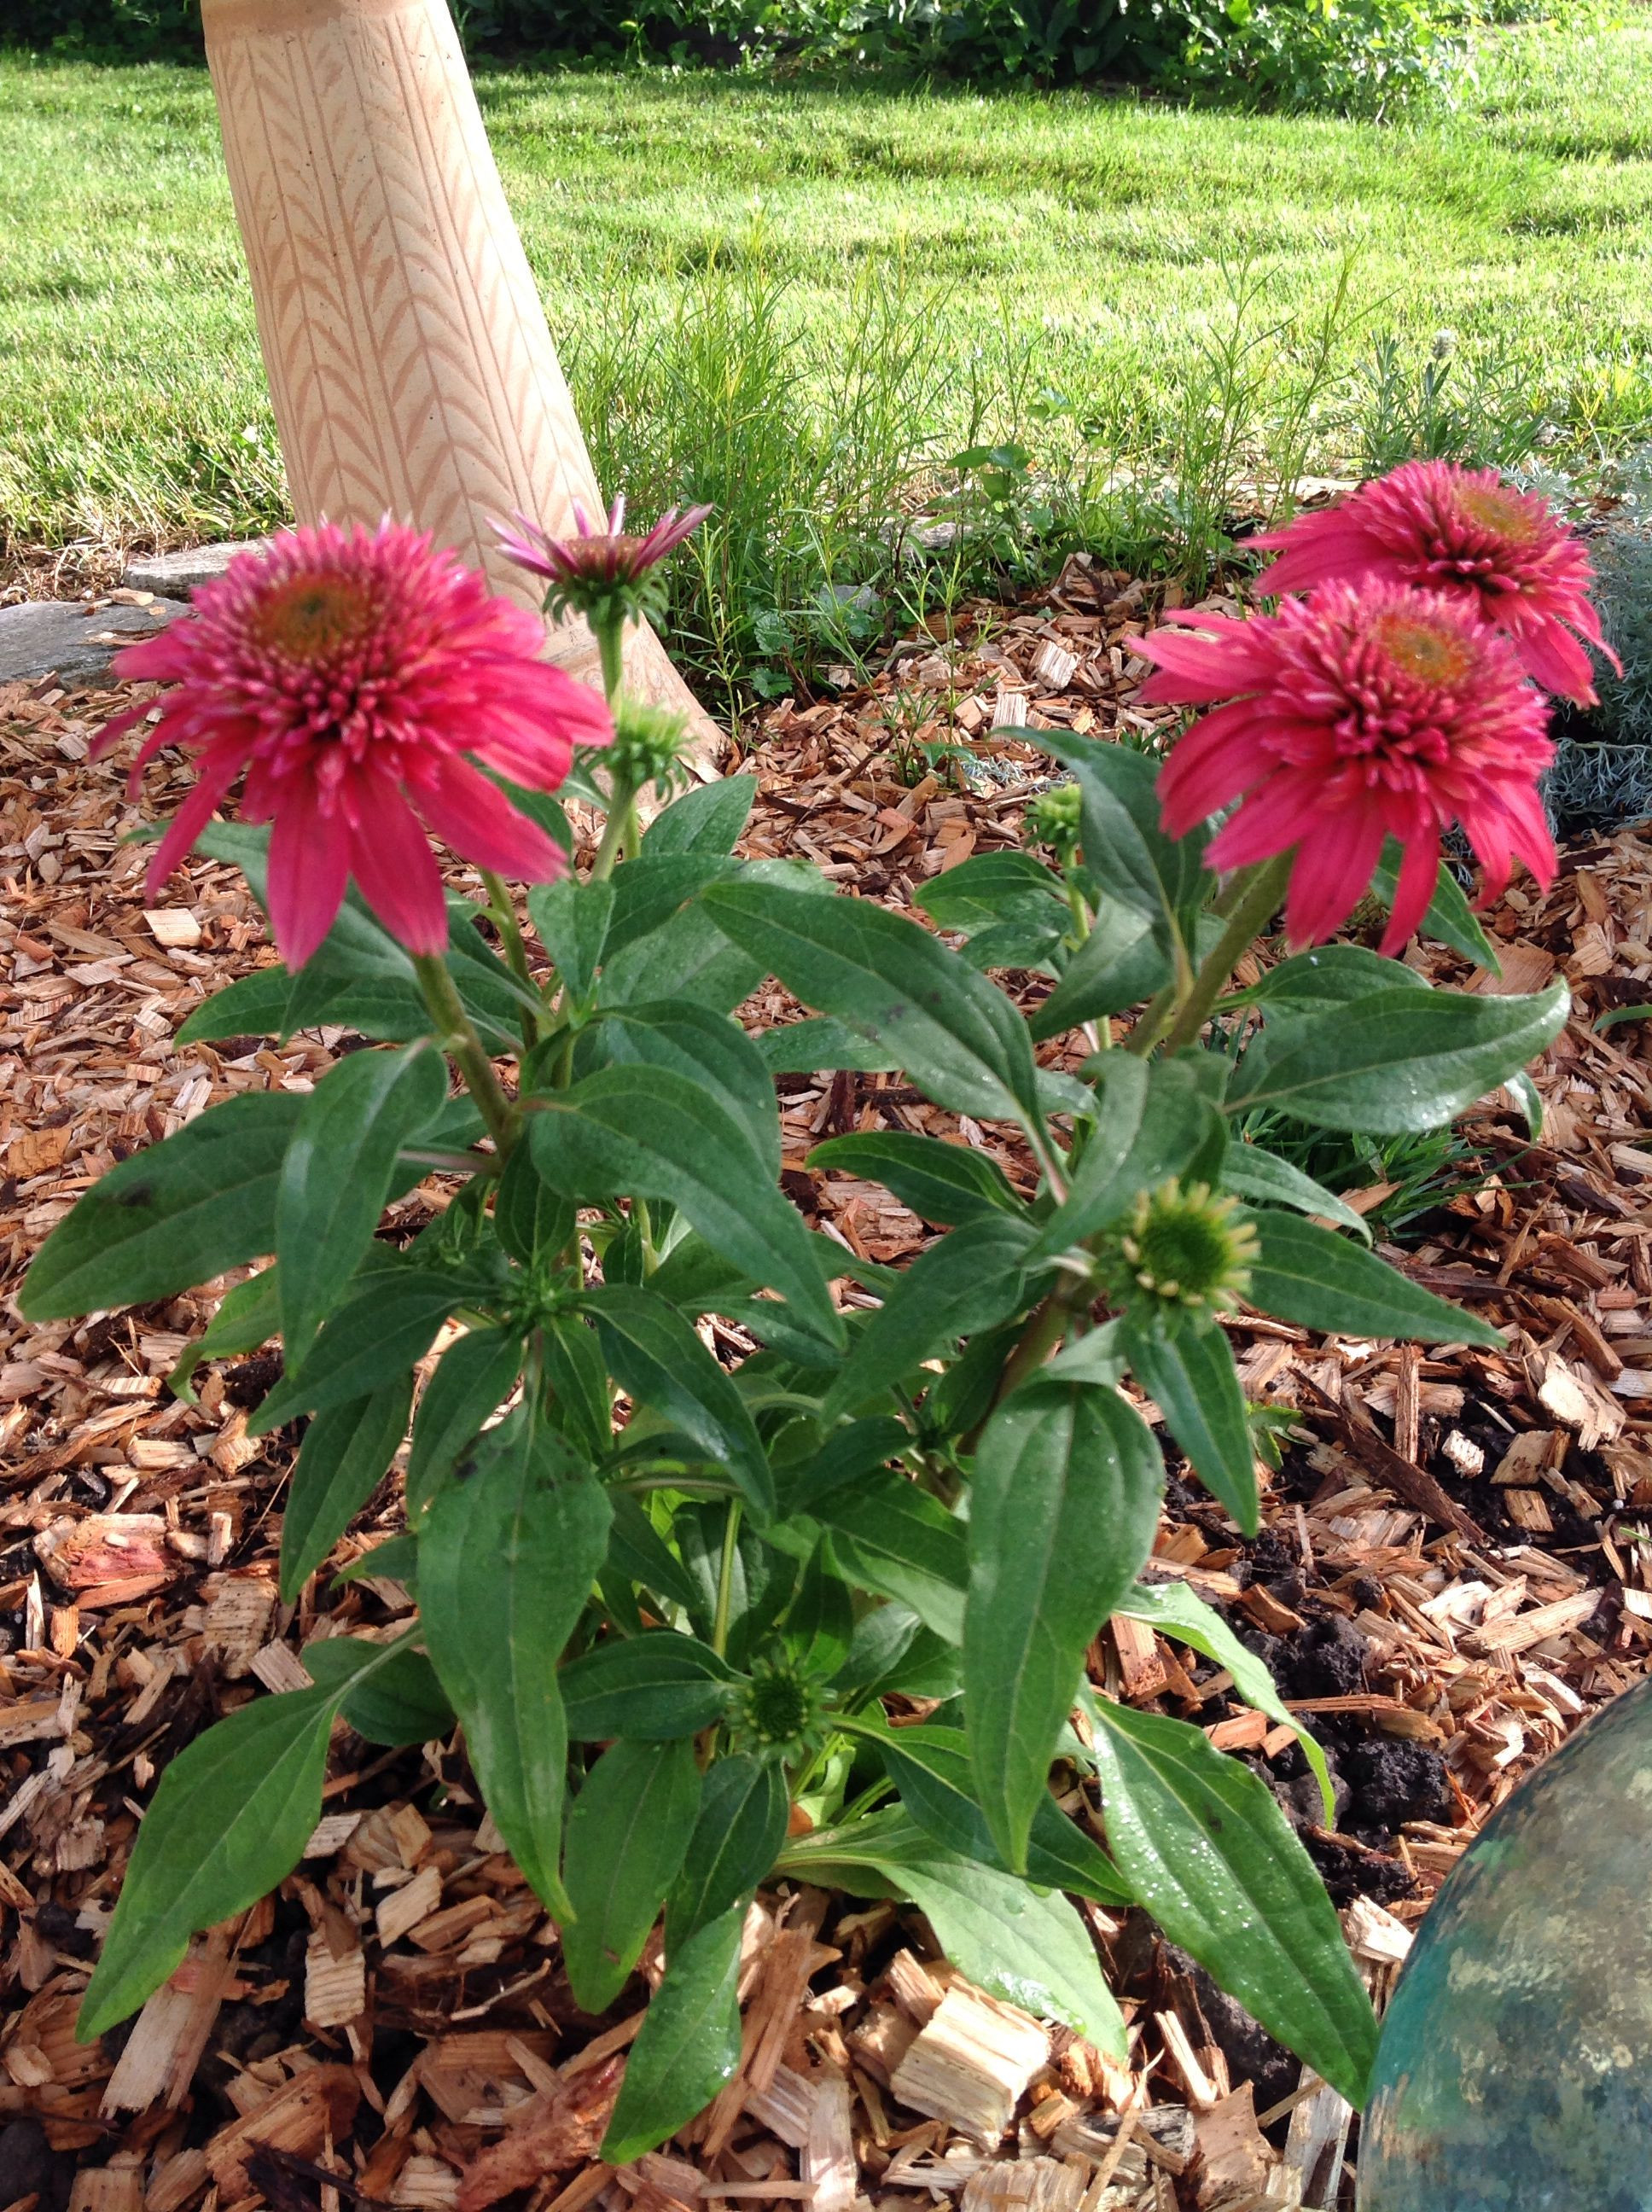 Coneflower Pom Pom Attracts butterflies and bees